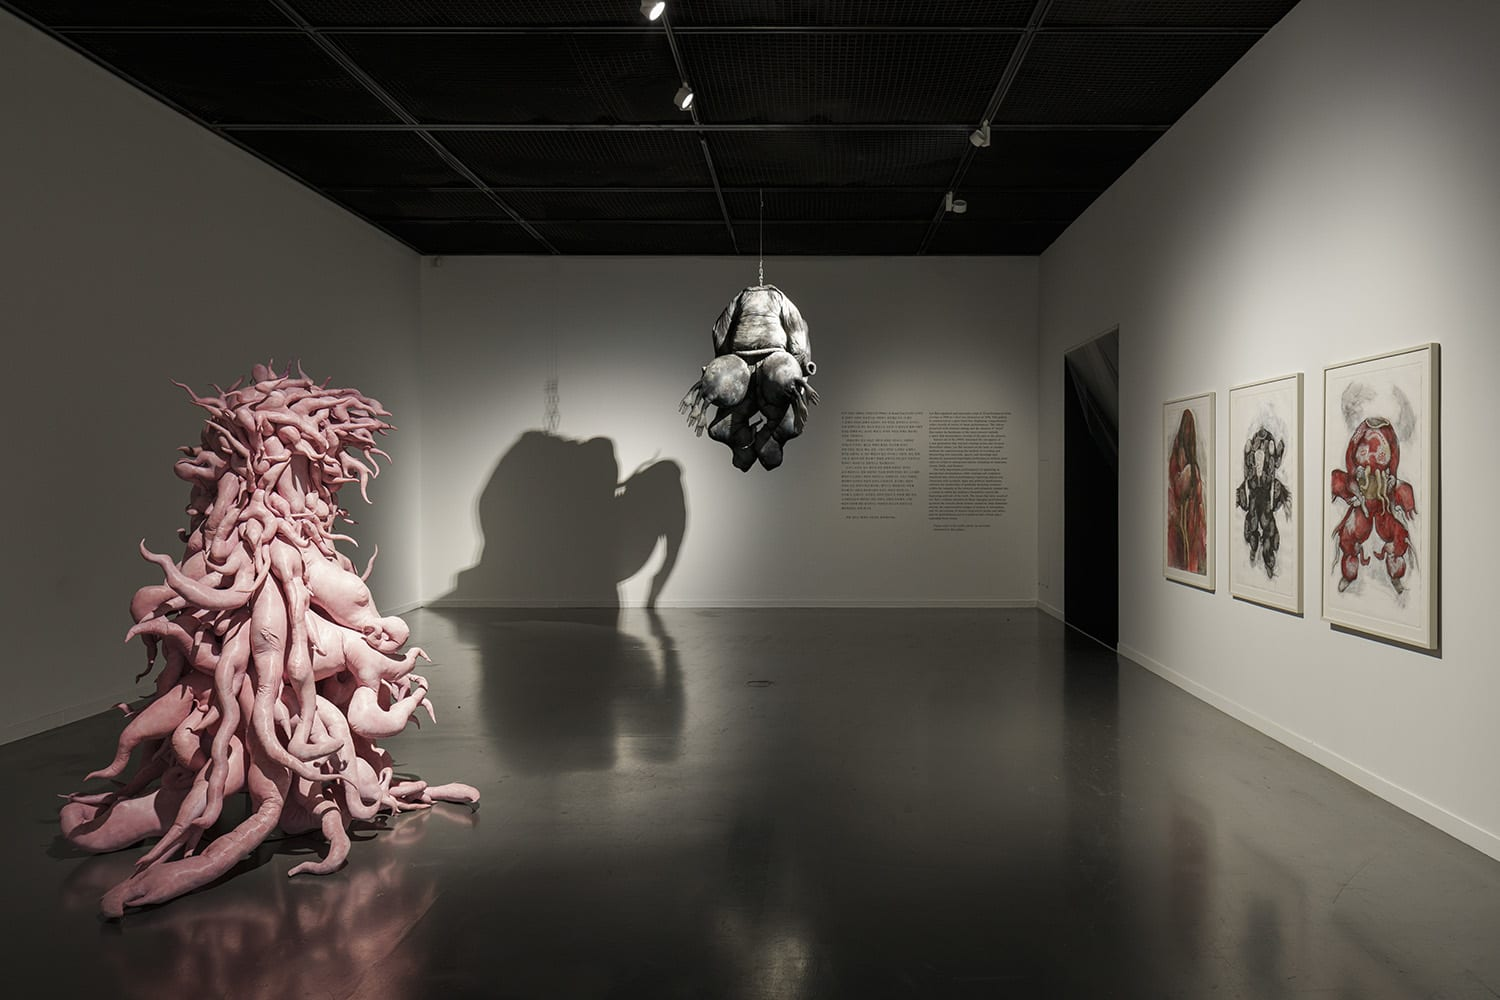 """<a href=""""/content/feature/761/detail/image24238/"""" class=""""pageload-link-type-popup-enabled-content""""><p><span>Lee Bul,</span><em>Beginning</em><span>, exhibition view at Seoul Museum of Art, 2021.</span>Photo: Hong Cheolki. Courtesy of Seoul Museum of Art</p></a>"""